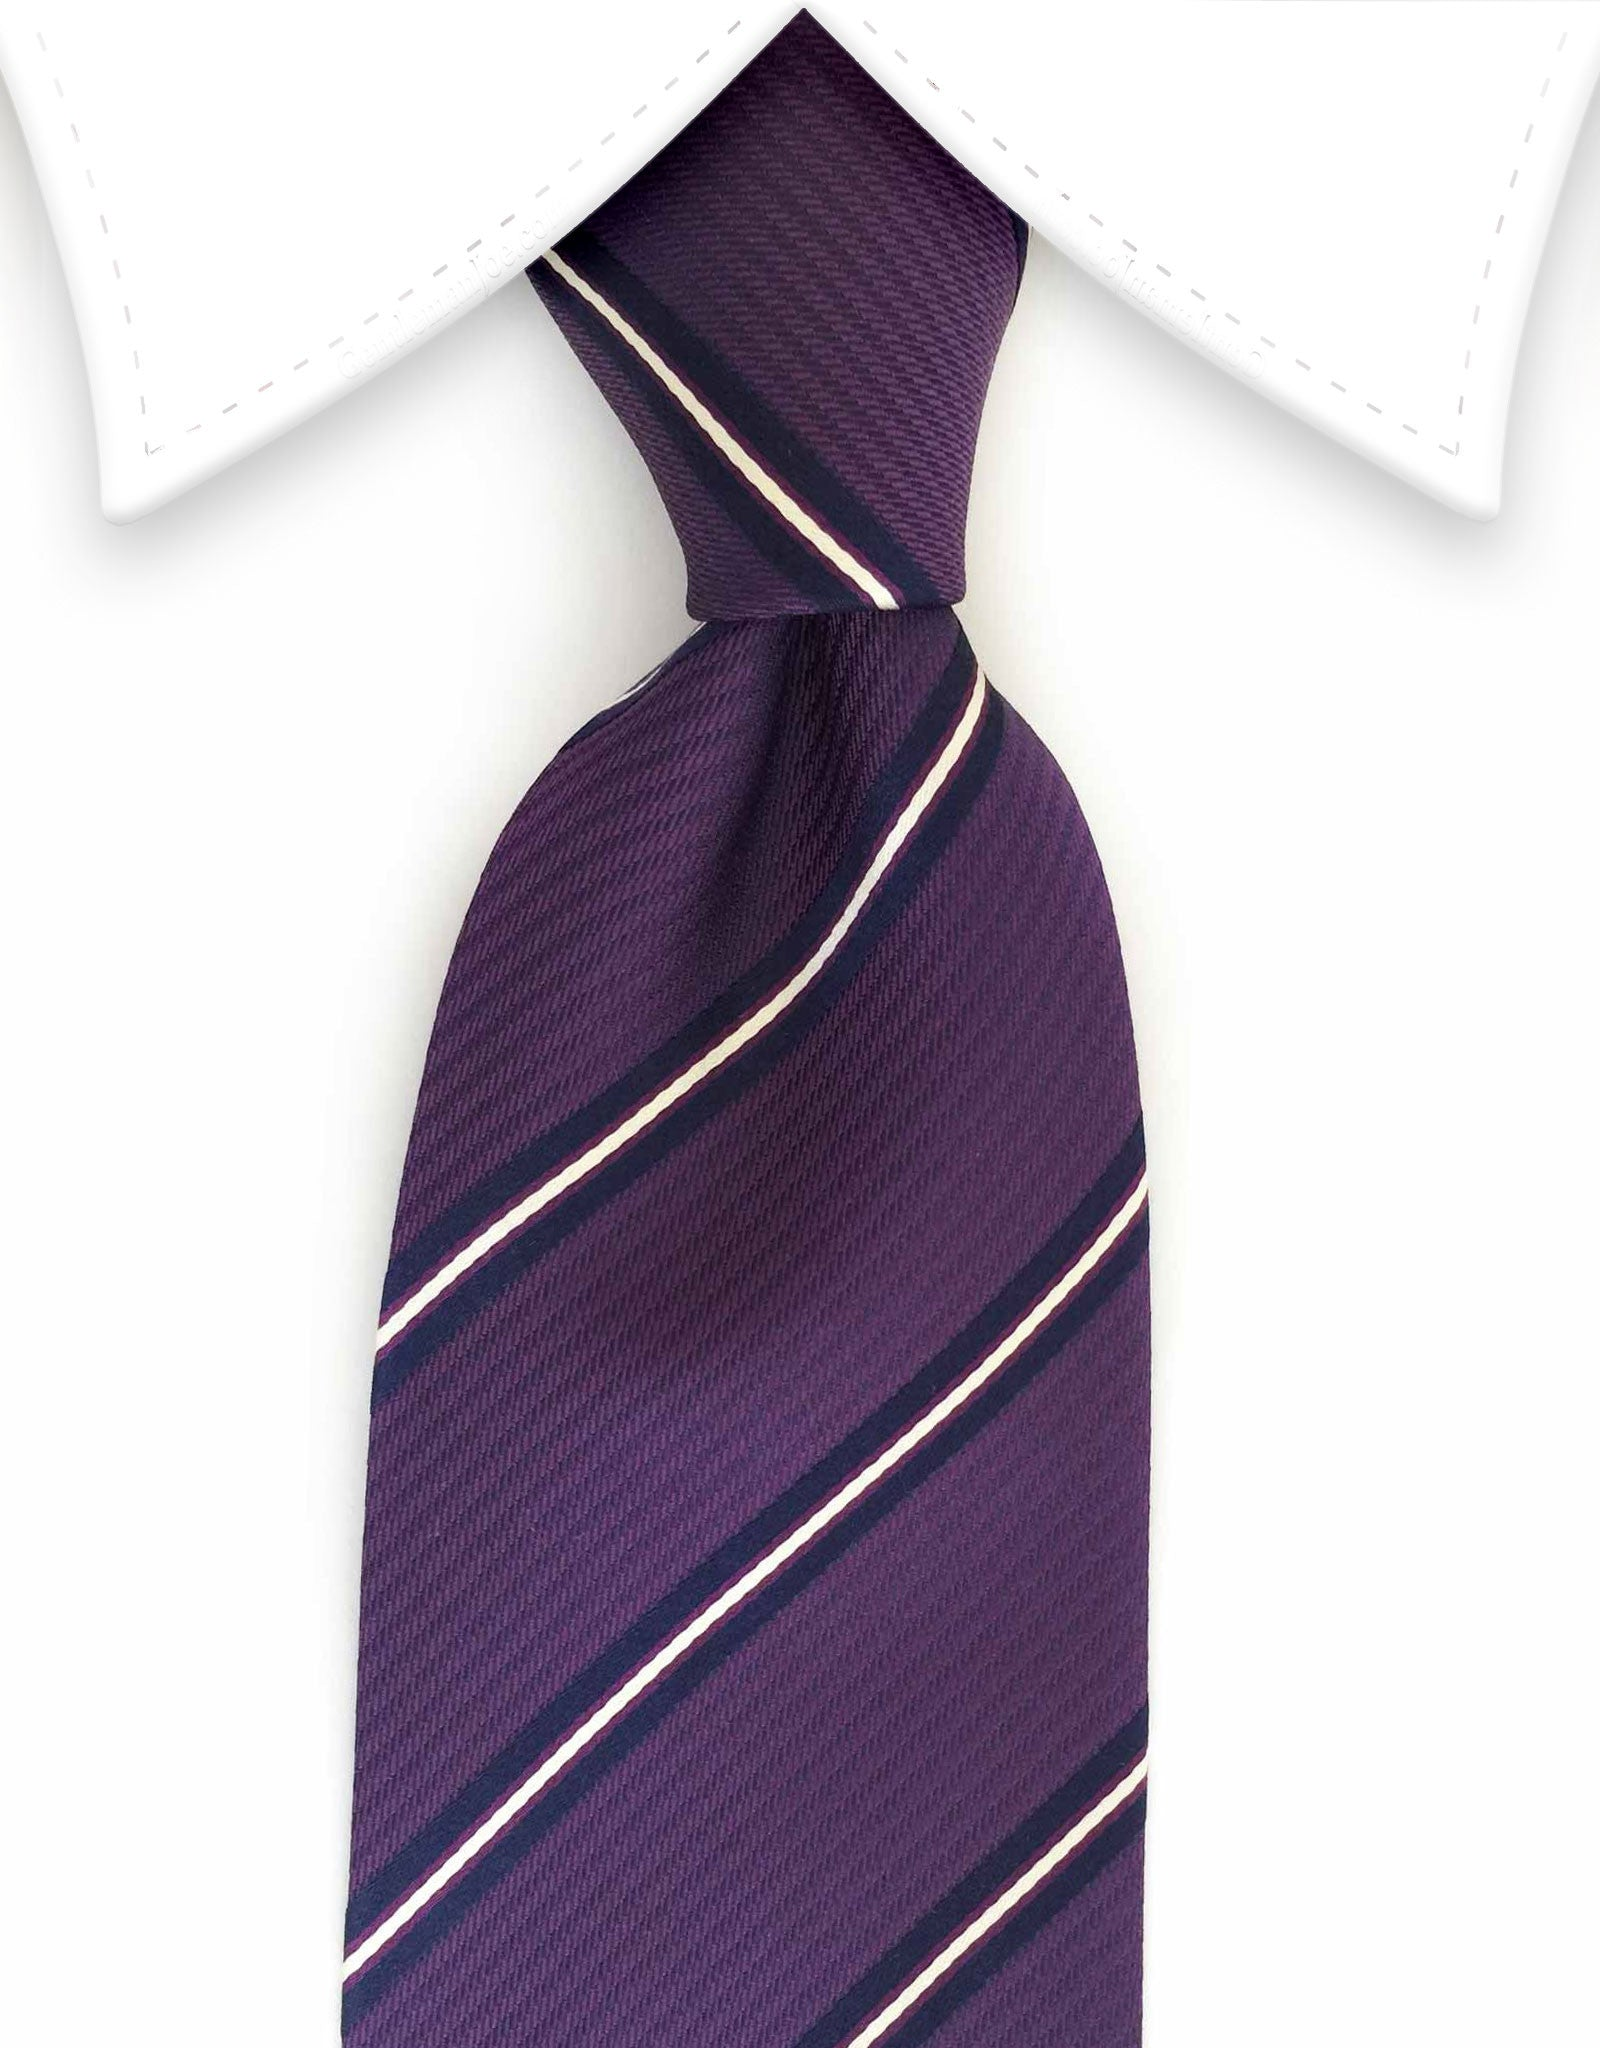 purple, navy blue, white striped tie